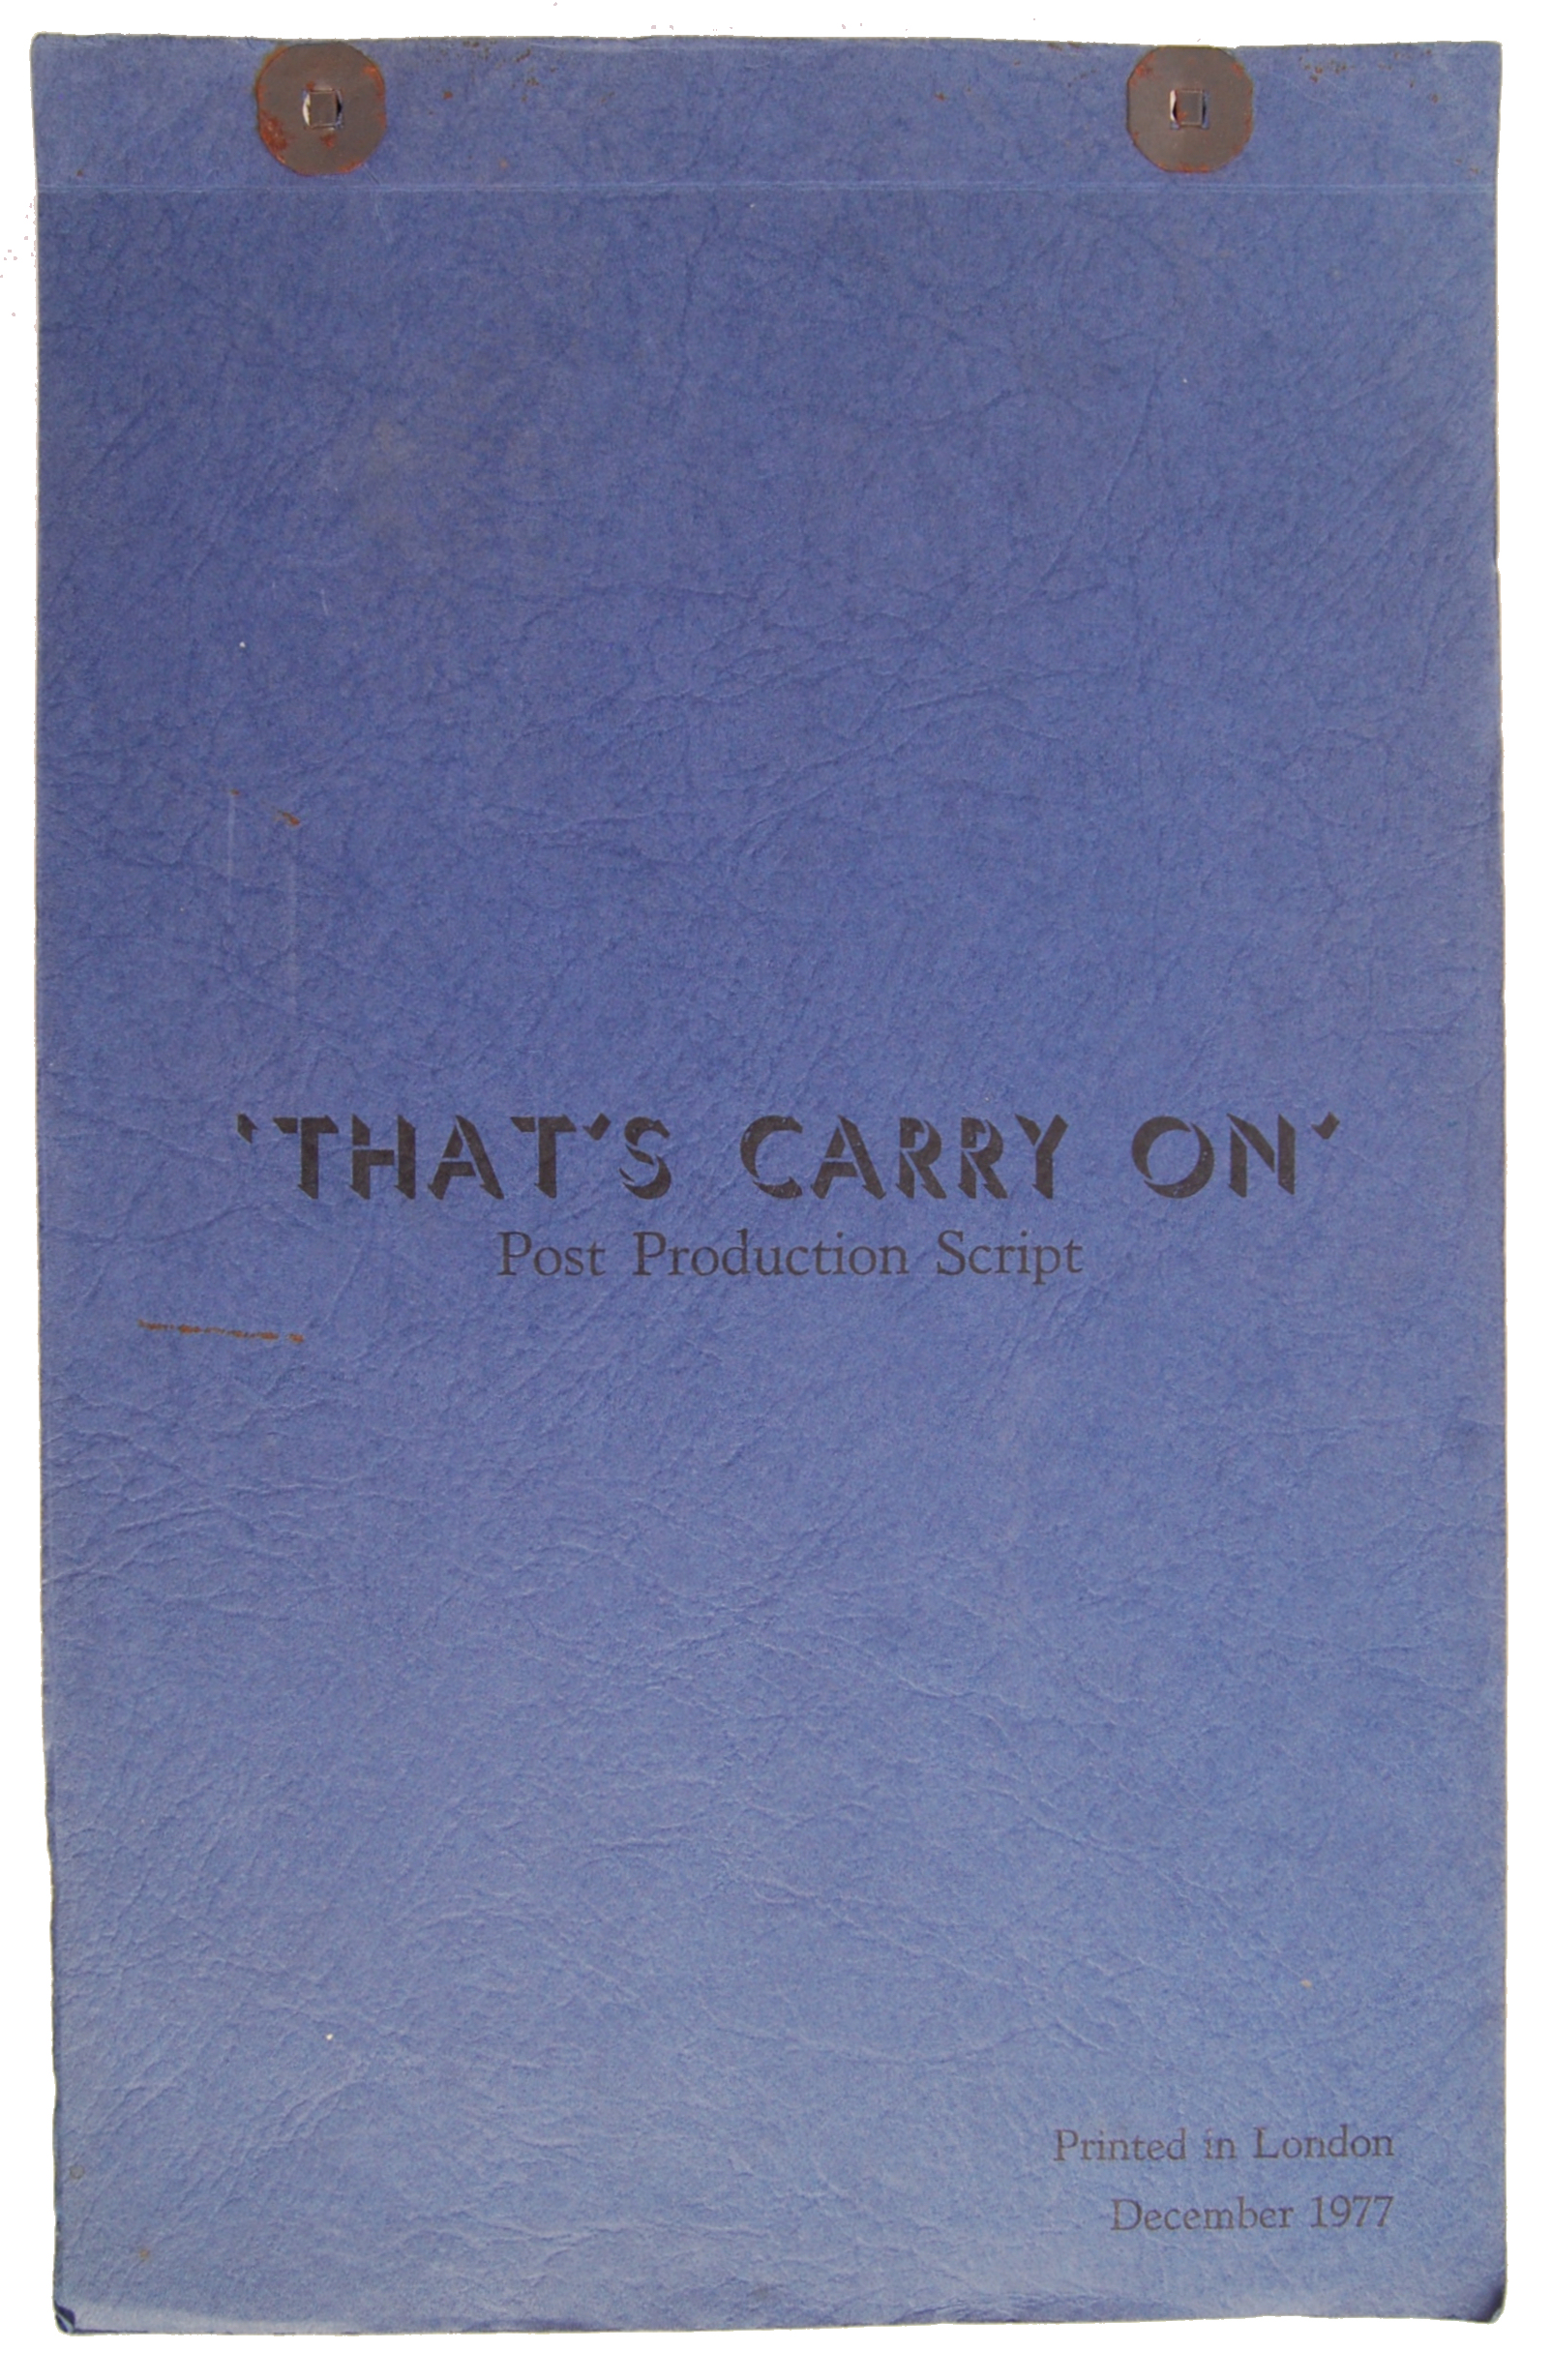 Lot 56 - RARE VINTAGE ' THAT'S CARRY ON ' POST PRODUCTION S